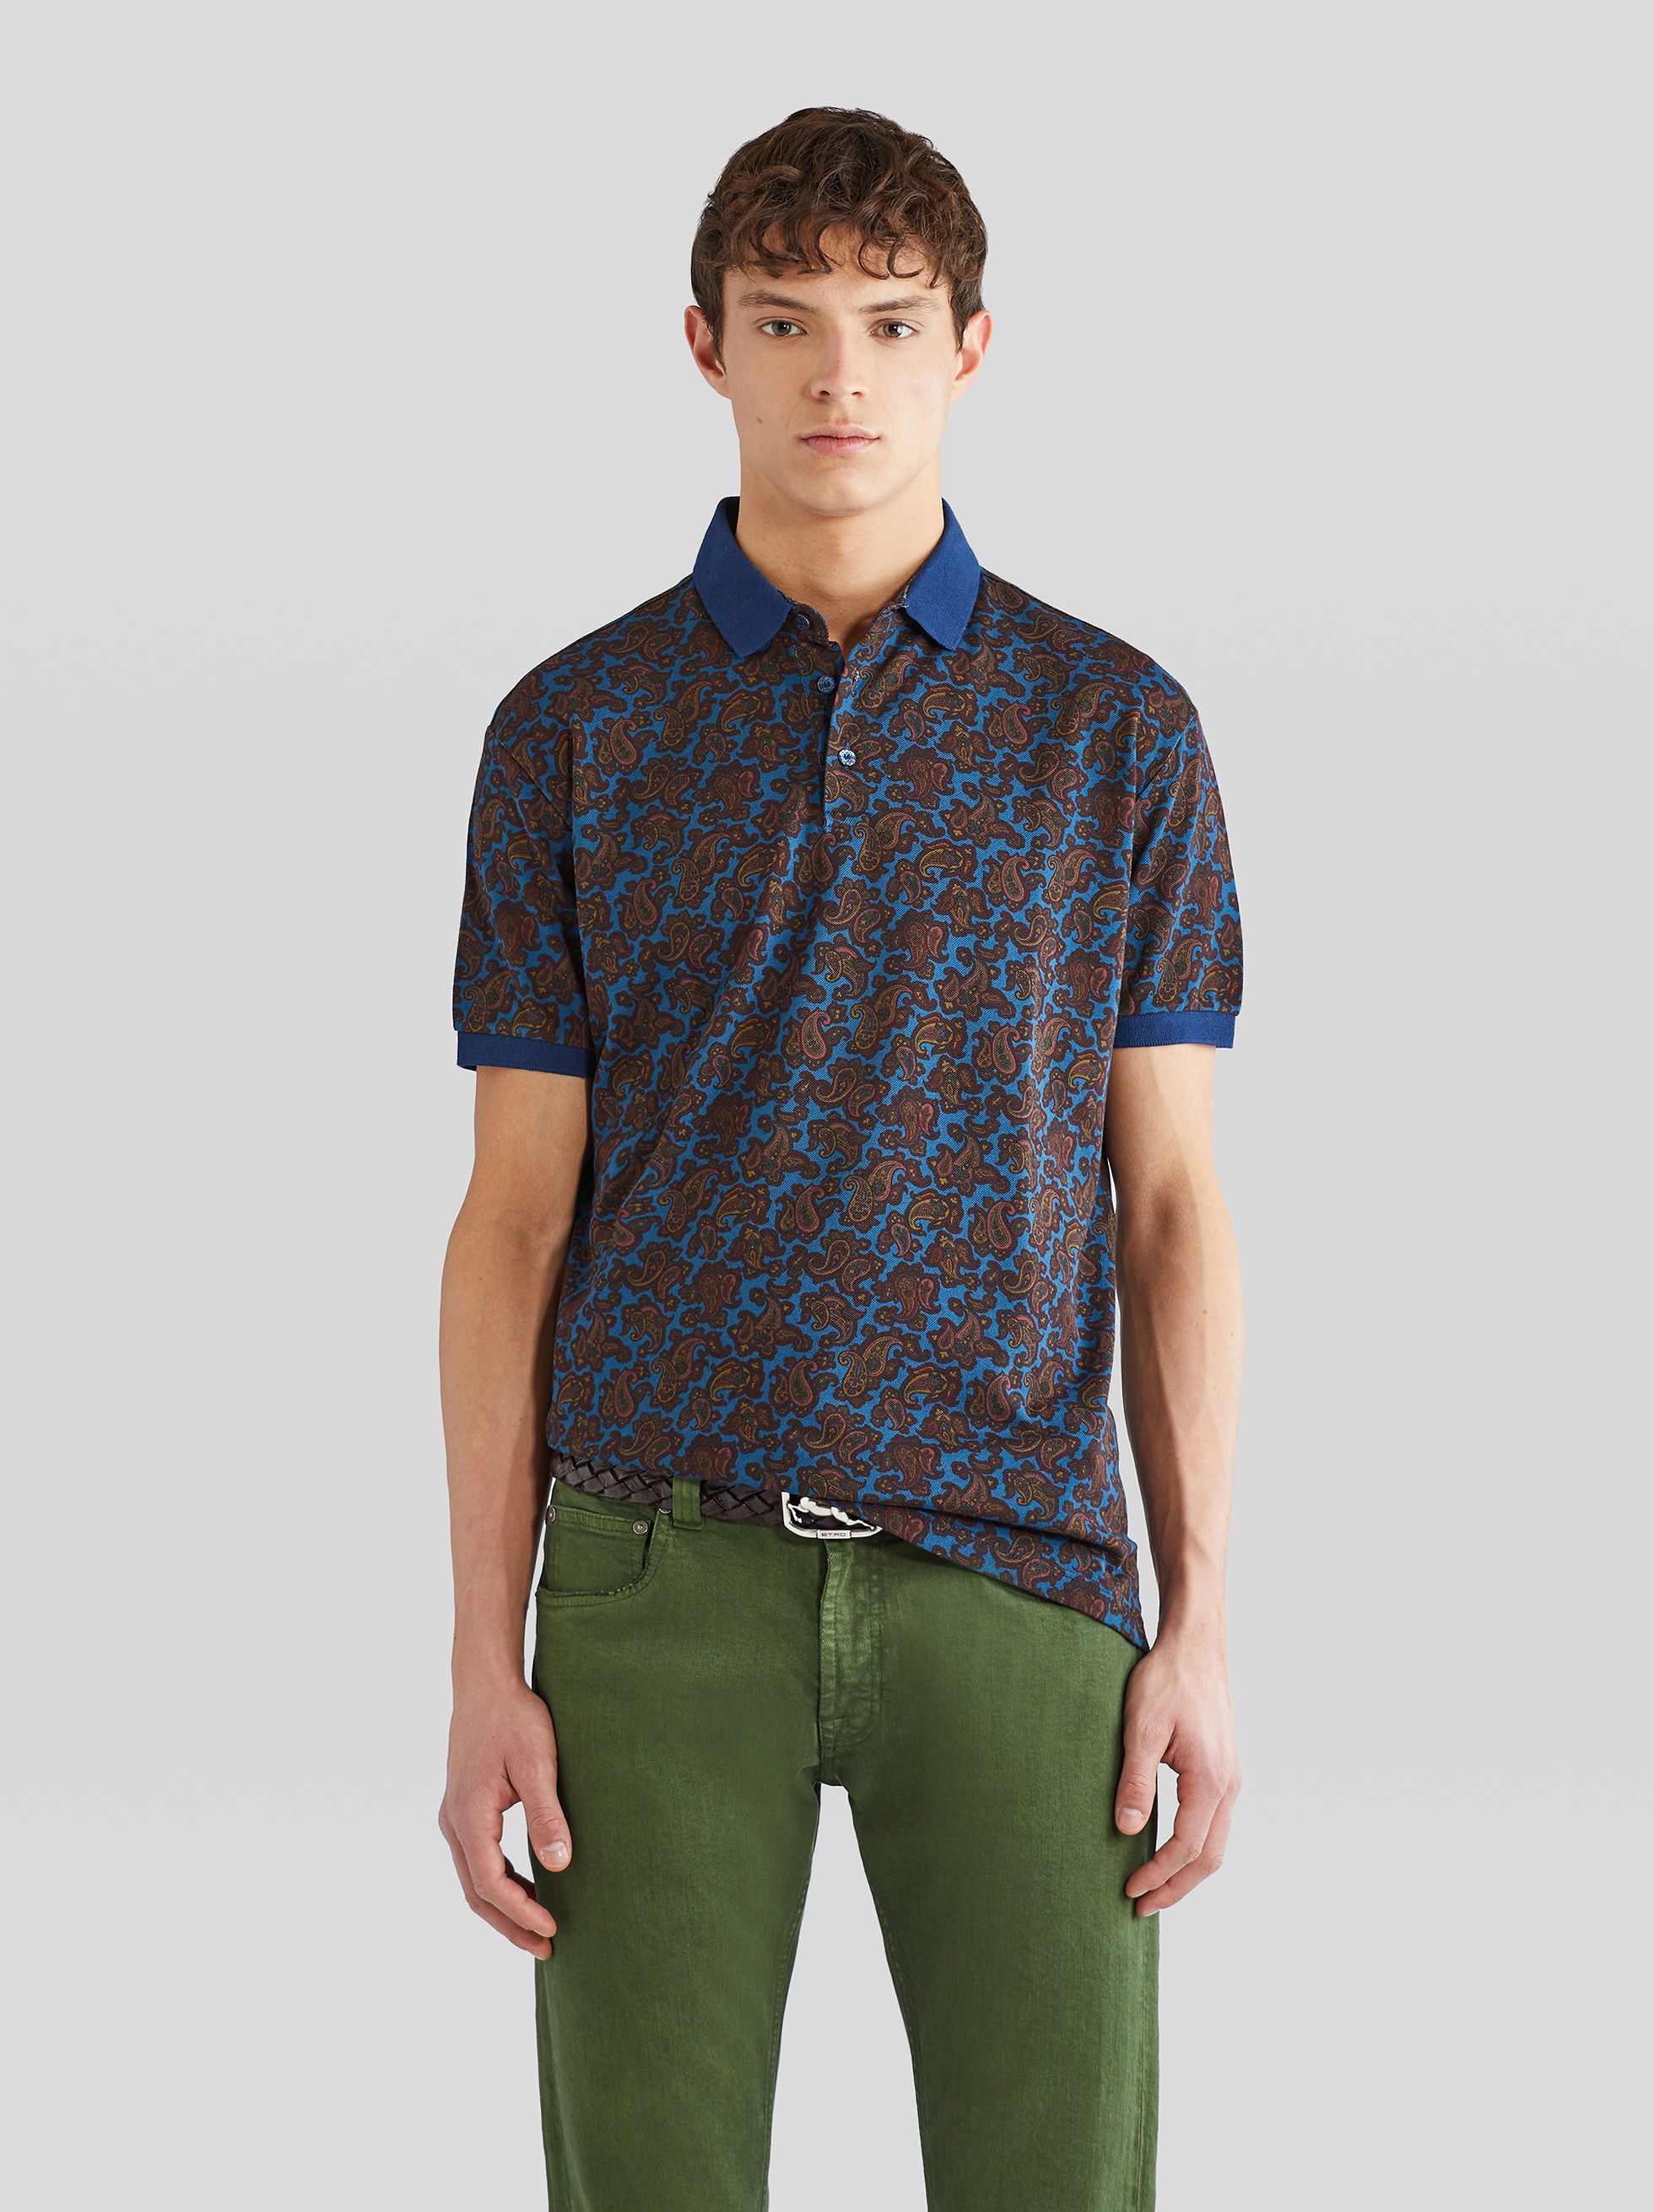 PIQUET POLO SHIRT WITH MICRO PAISLEY PRINT